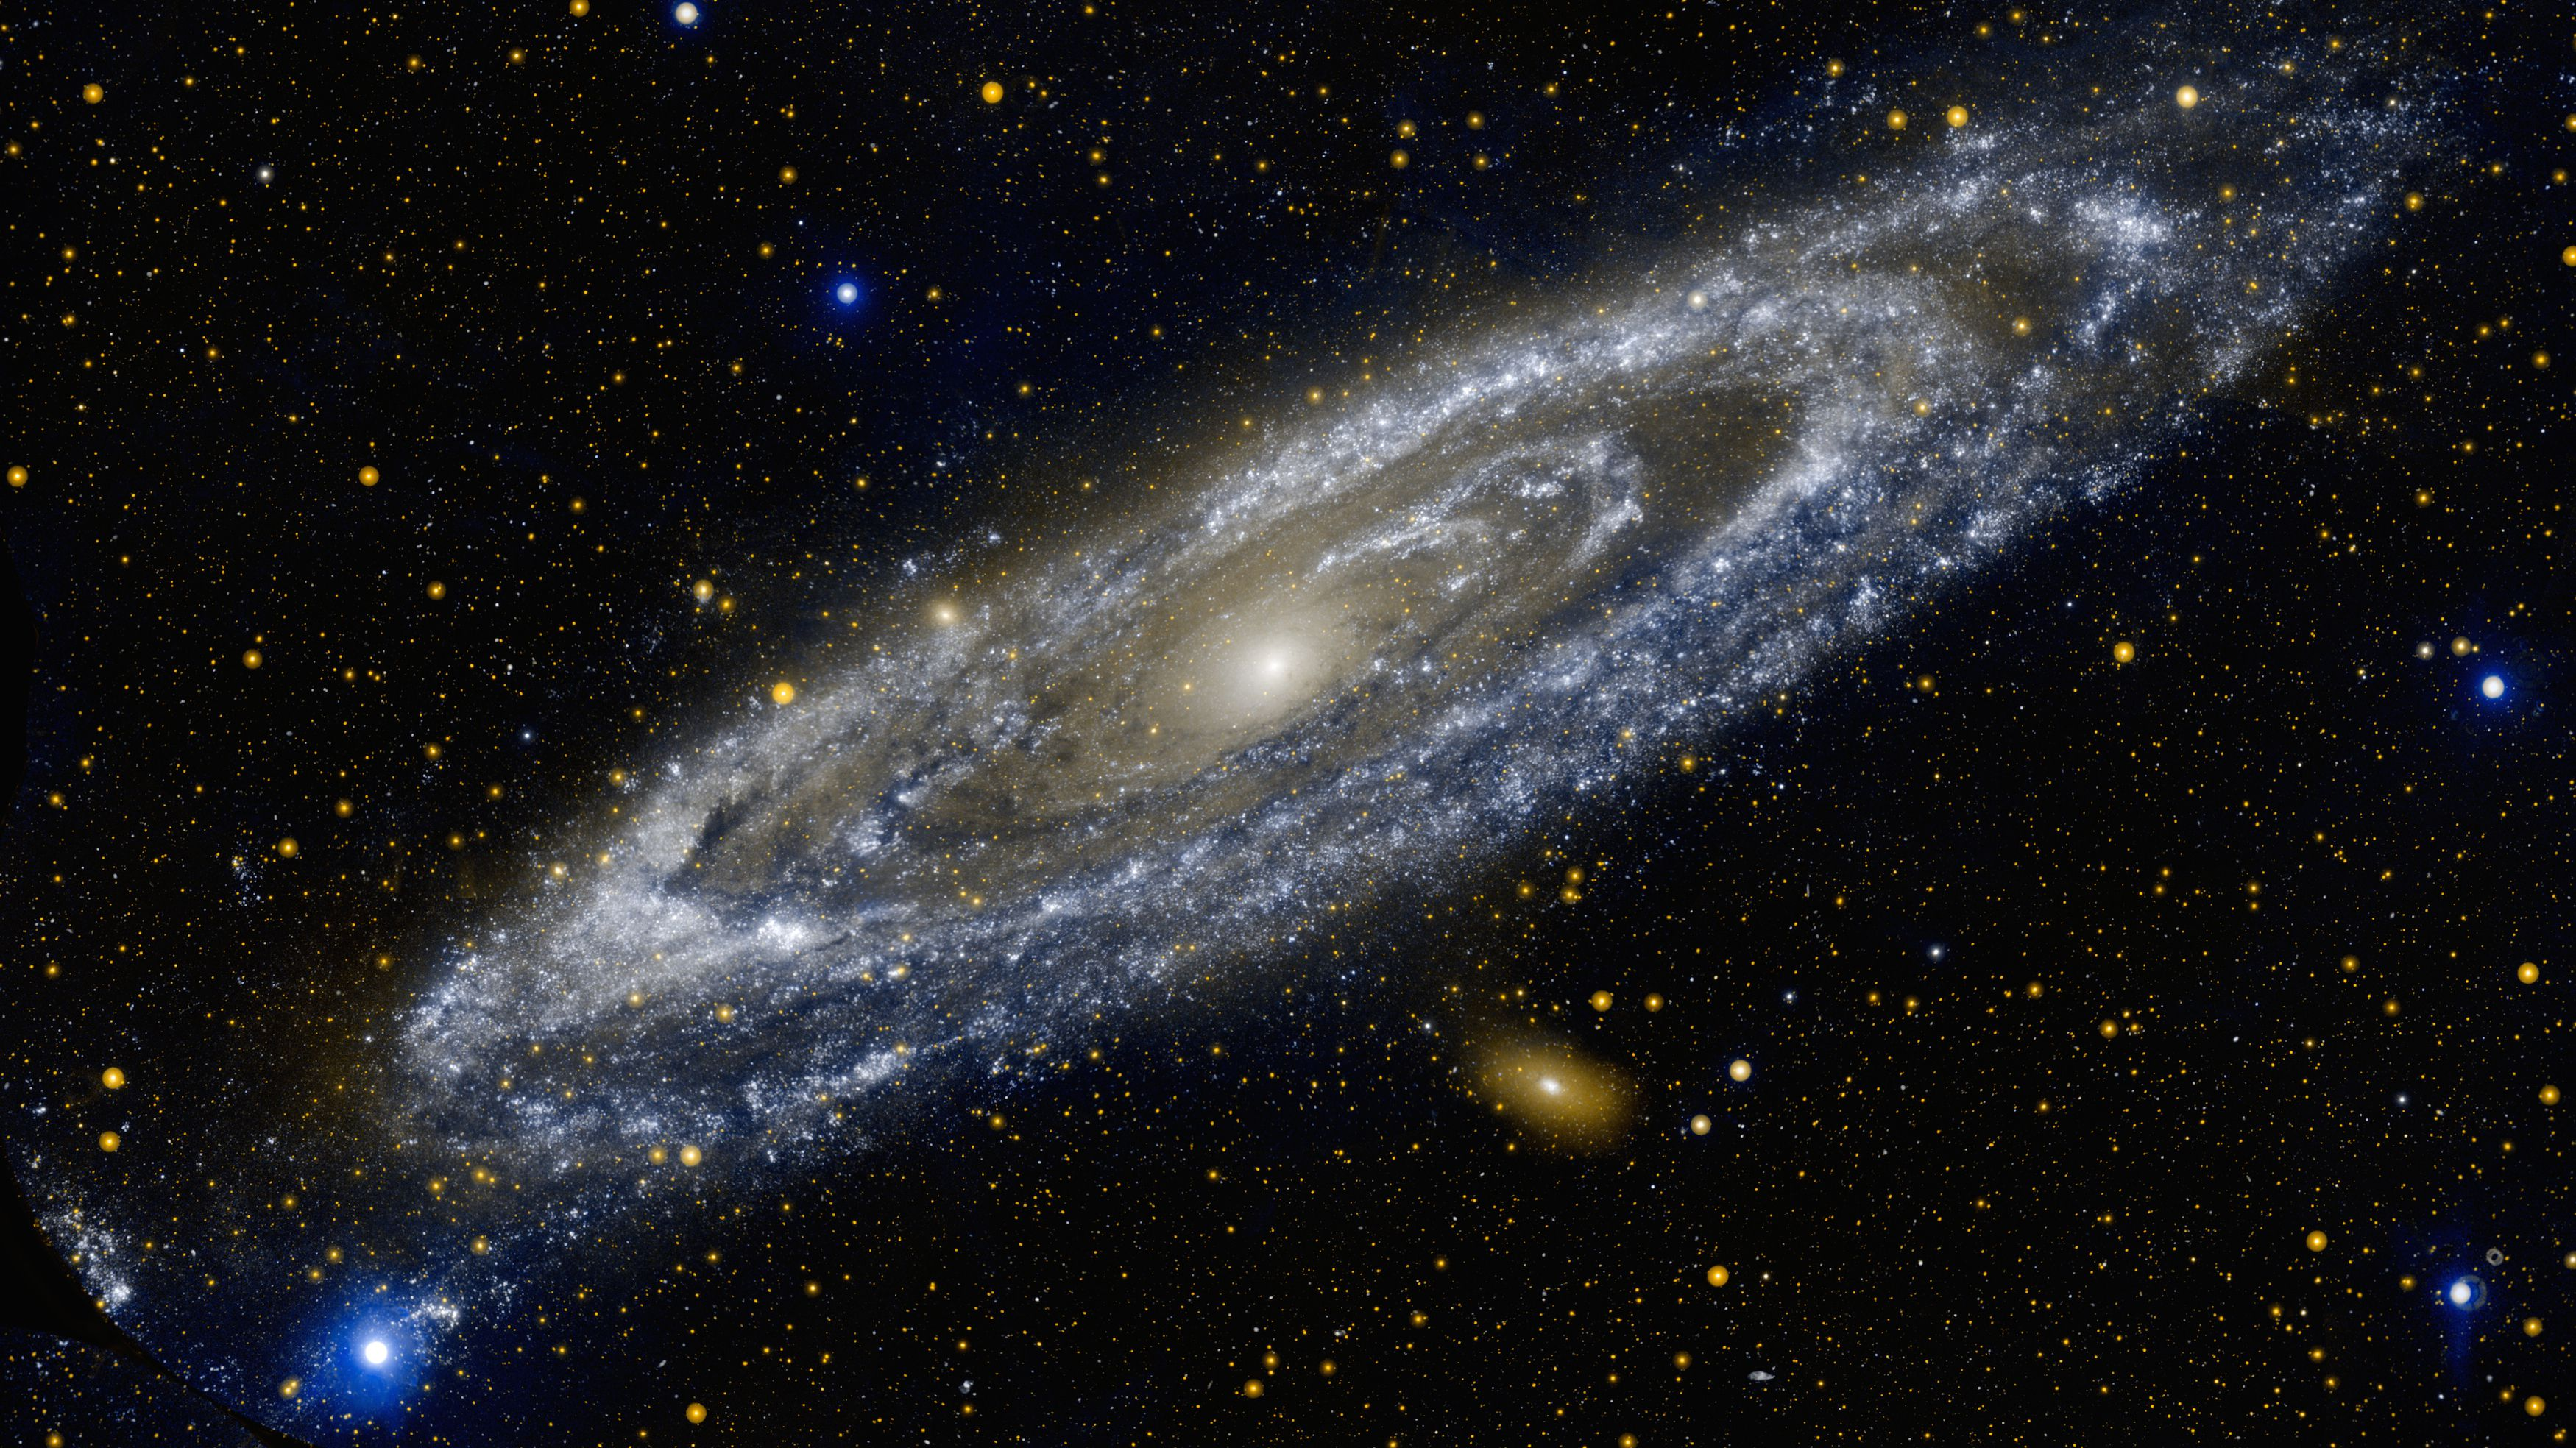 Image of the Milky Way.